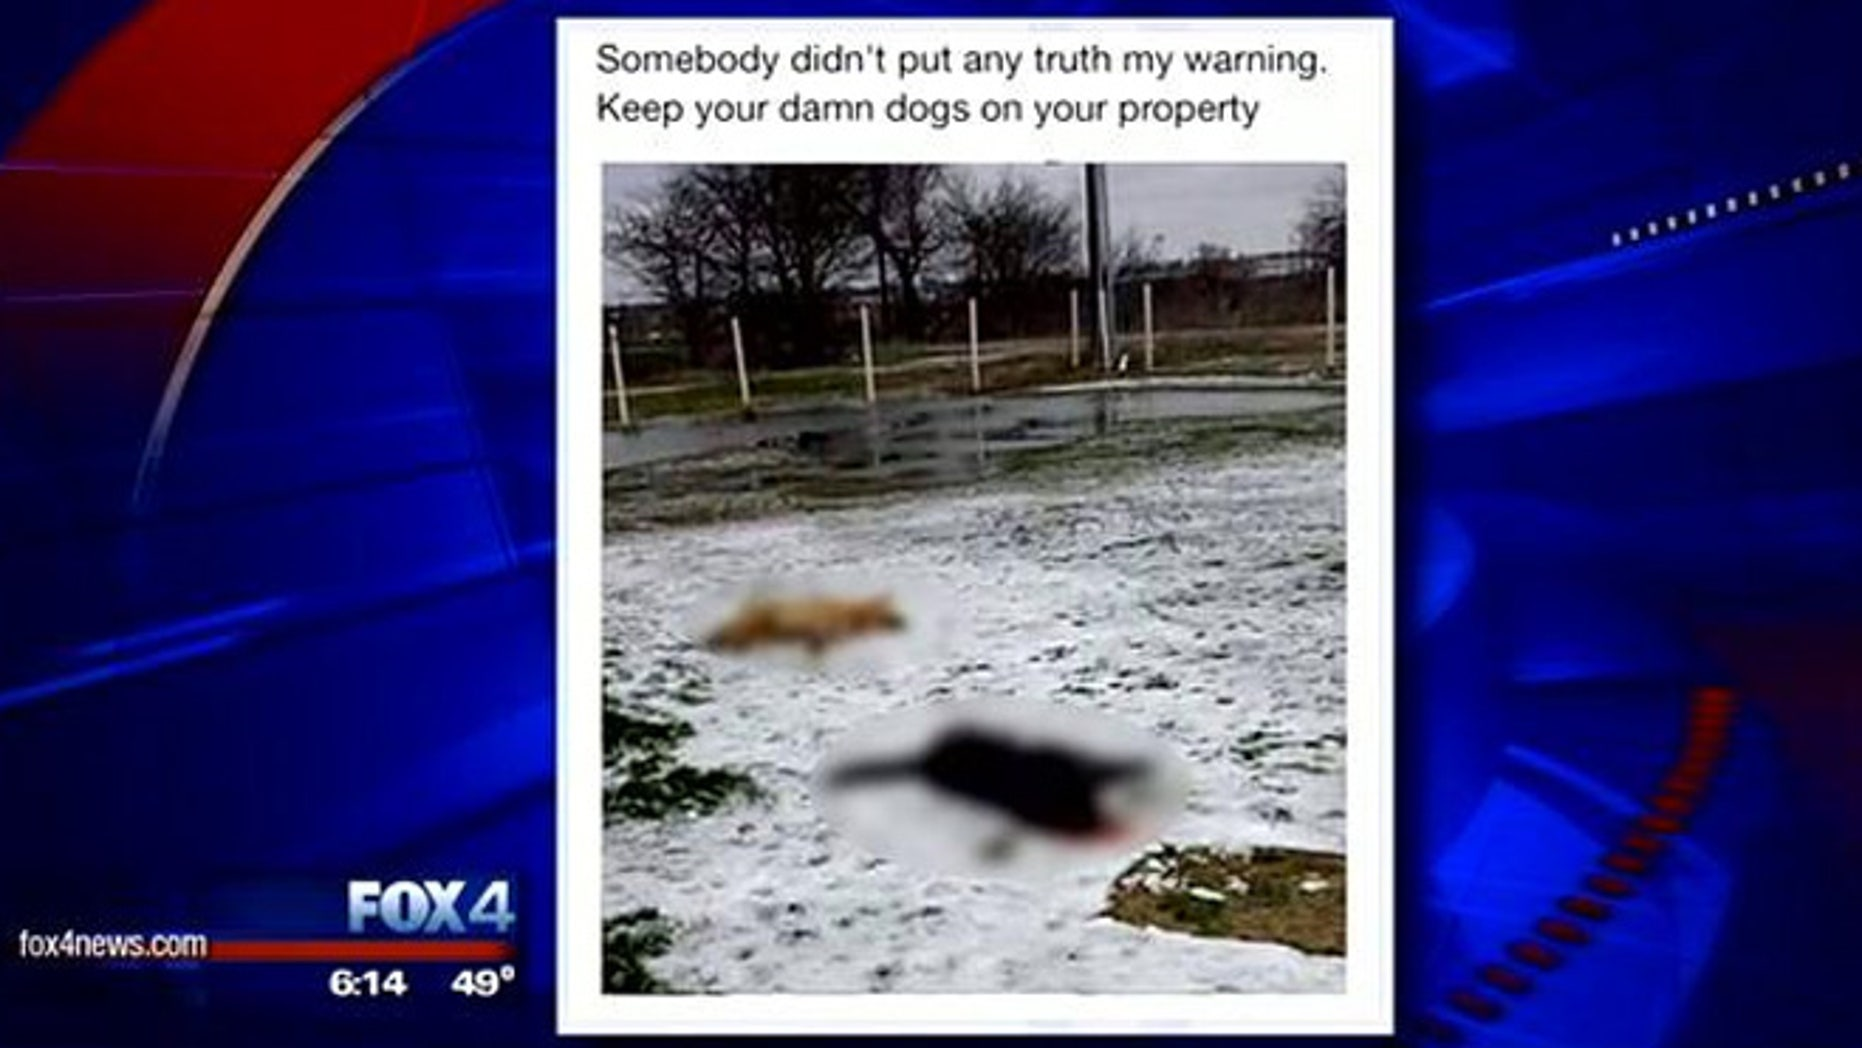 A volunteer firefighter in Hunt County has reportedly resigned and could face criminal charges over a social media post suggesting he shot two dogs.